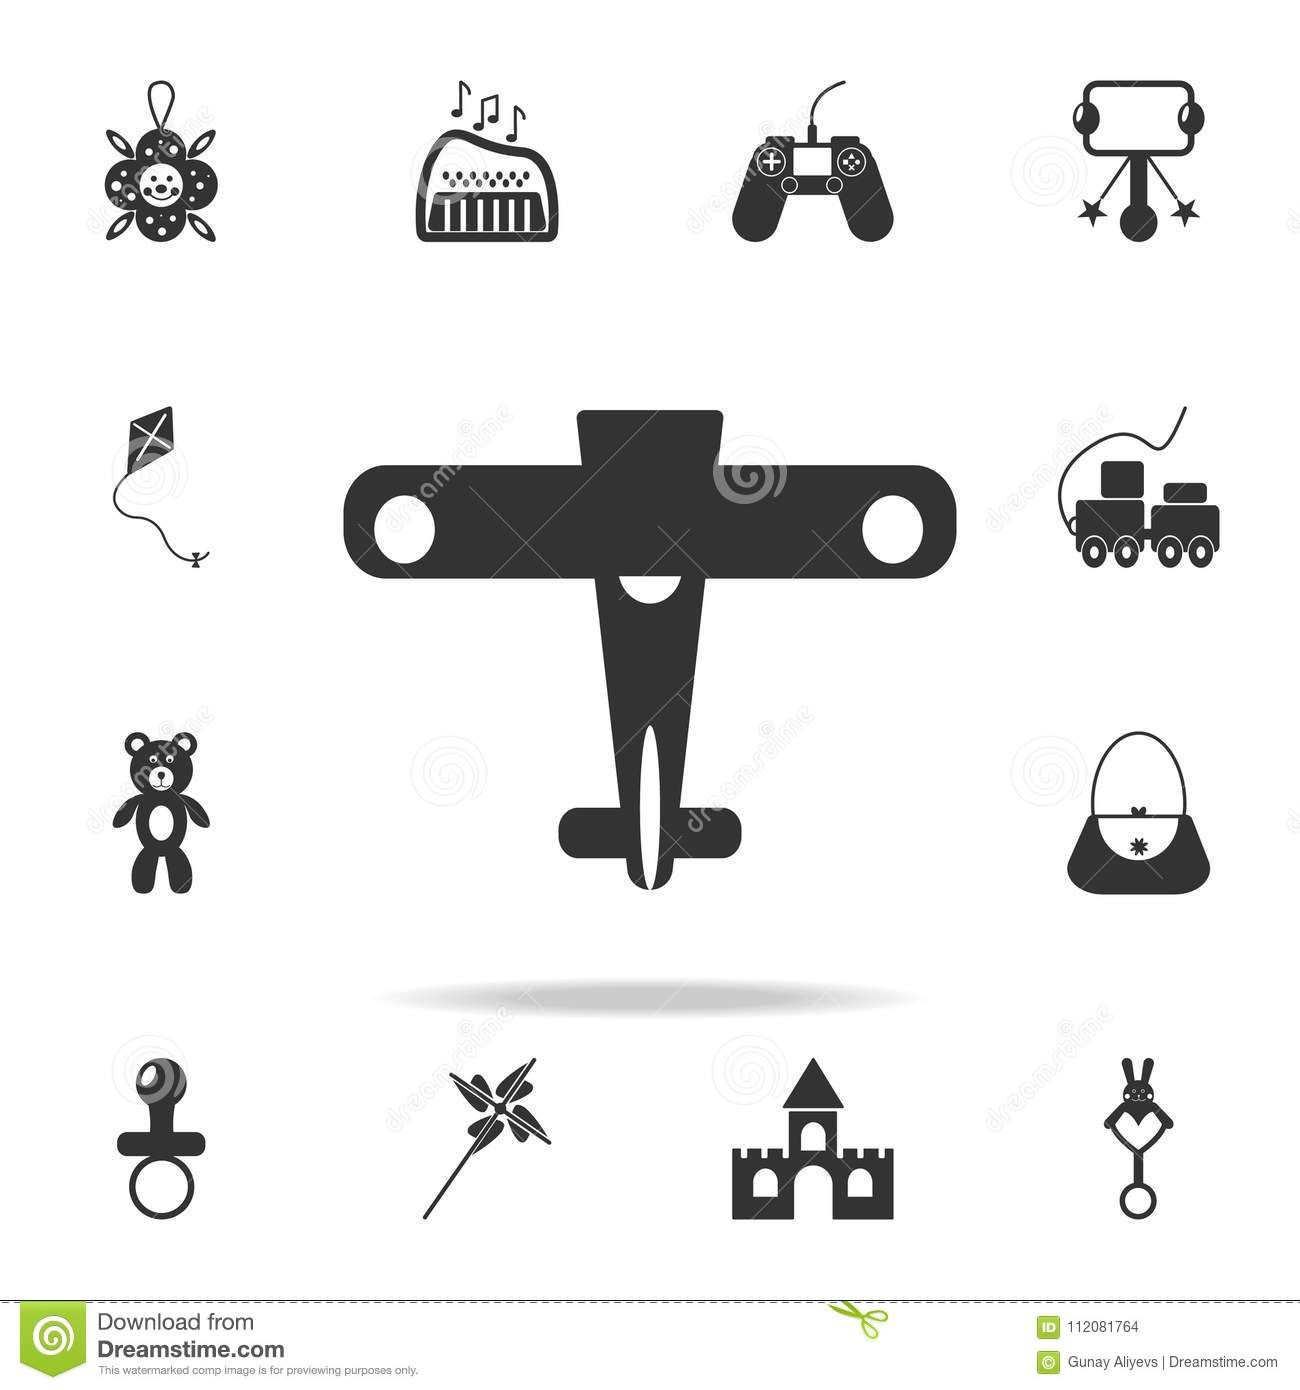 Plane Toy Monochrome Icon Illustration For Web And Mobile